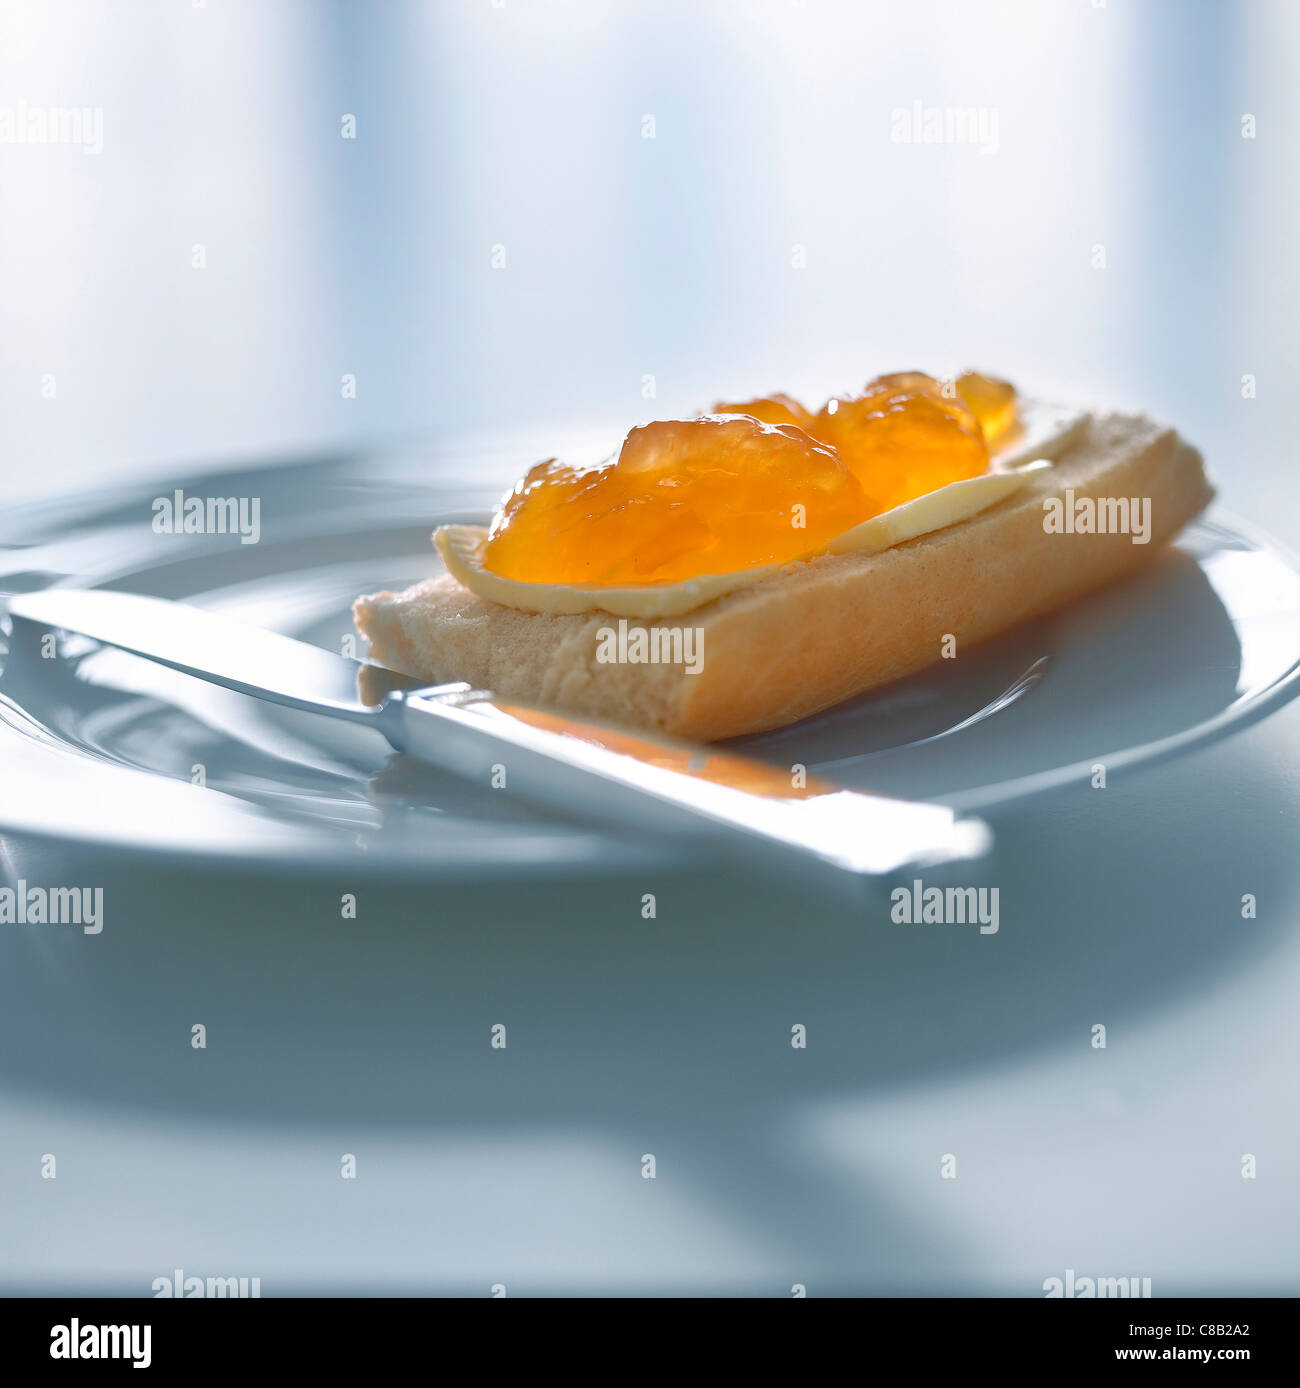 Marmalade on bread and butter - Stock Image